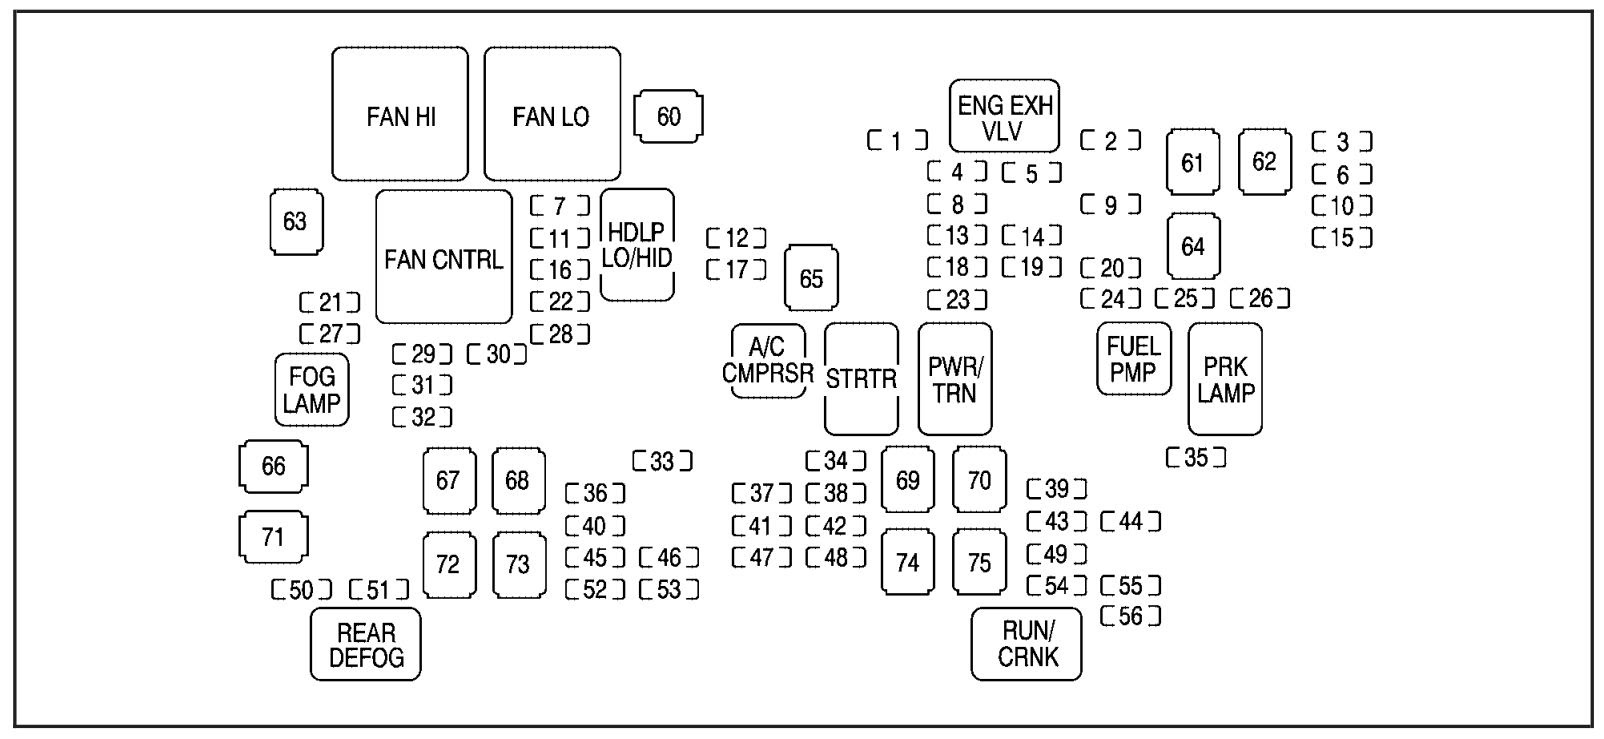 Wiring Diagram: 29 2004 Chevy Avalanche Fuse Box Diagram